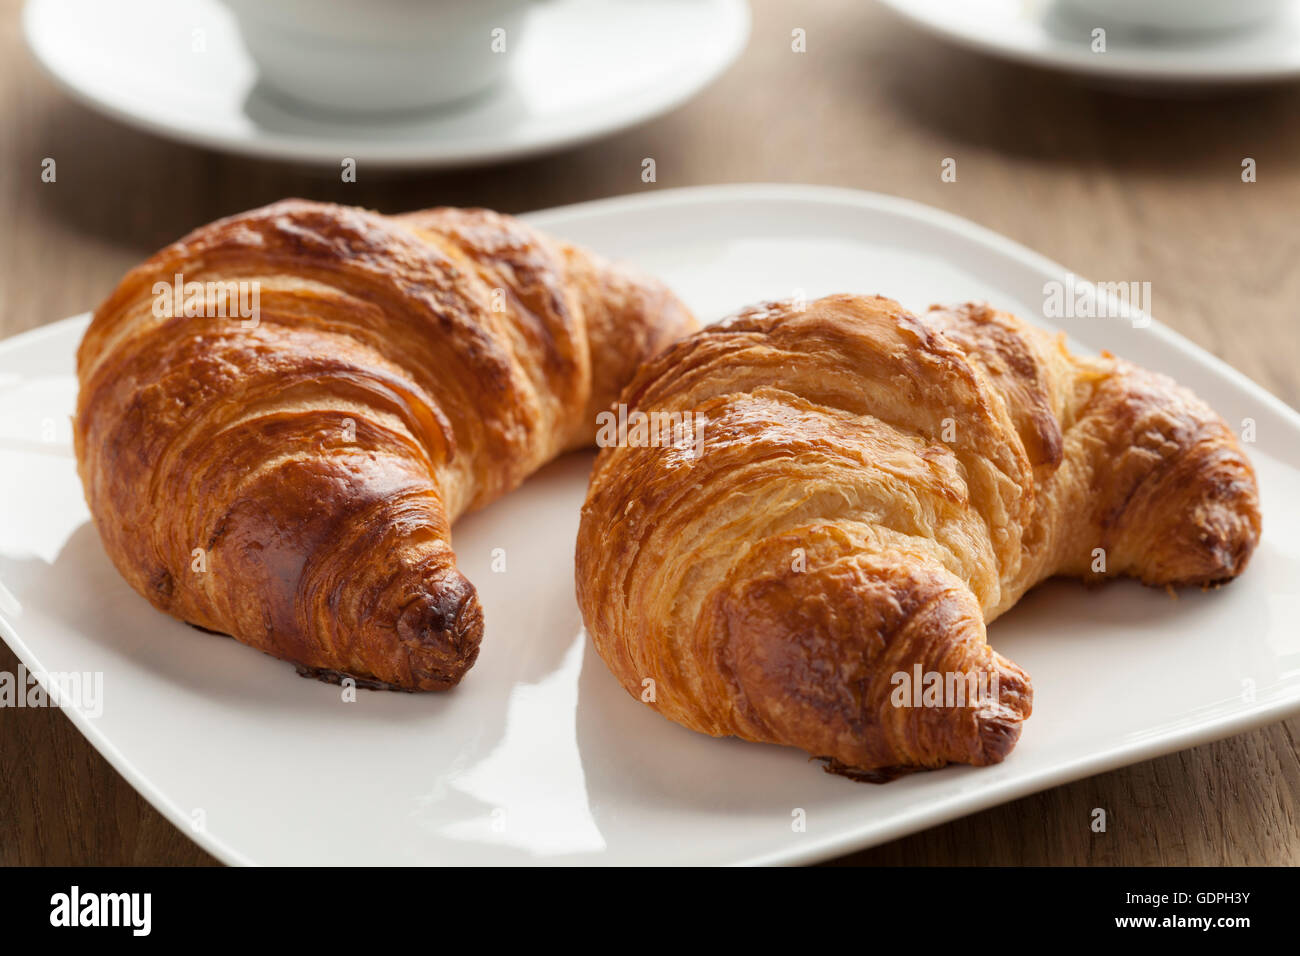 Dish with fresh baked french croissants for breakfast - Stock Image